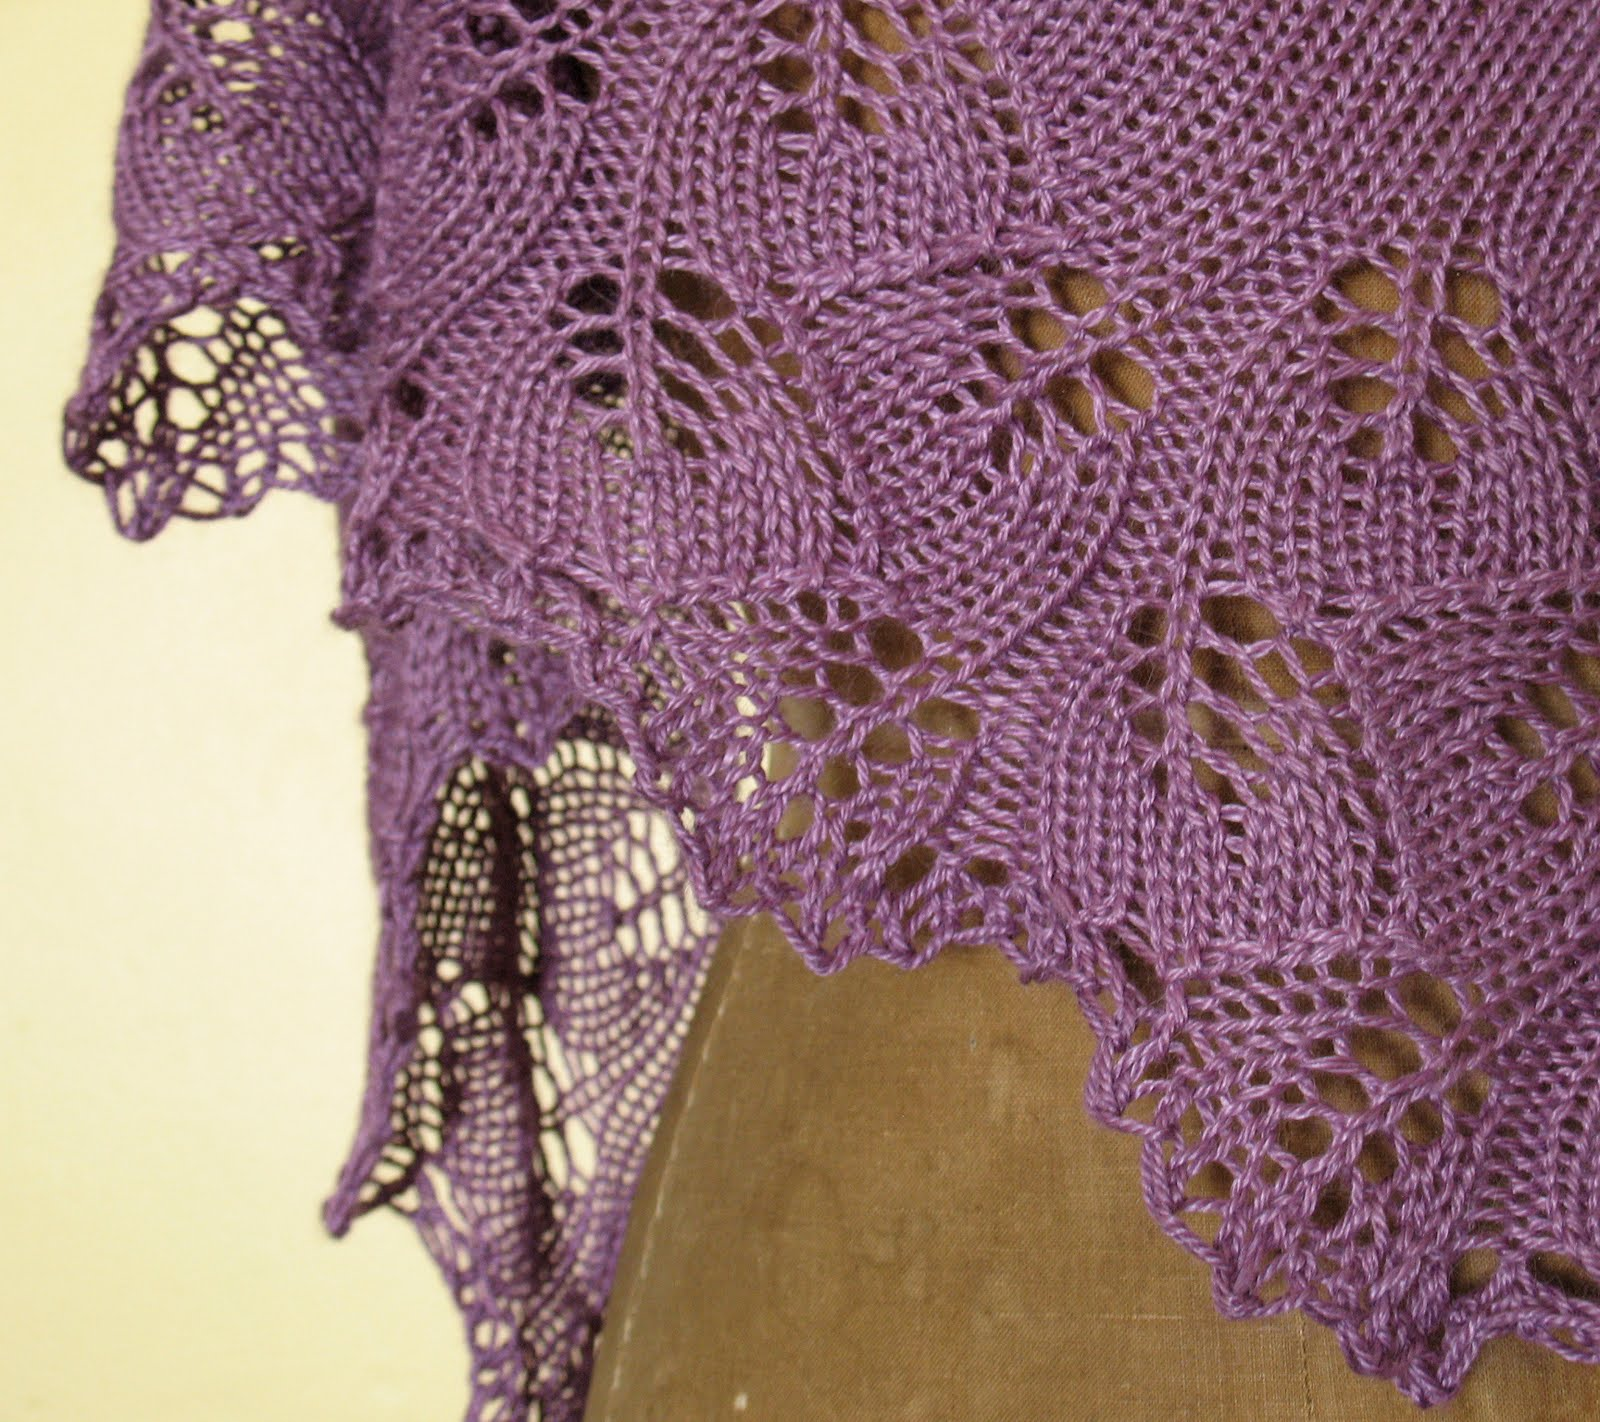 knit, too!: ginkgo leaves in summer.